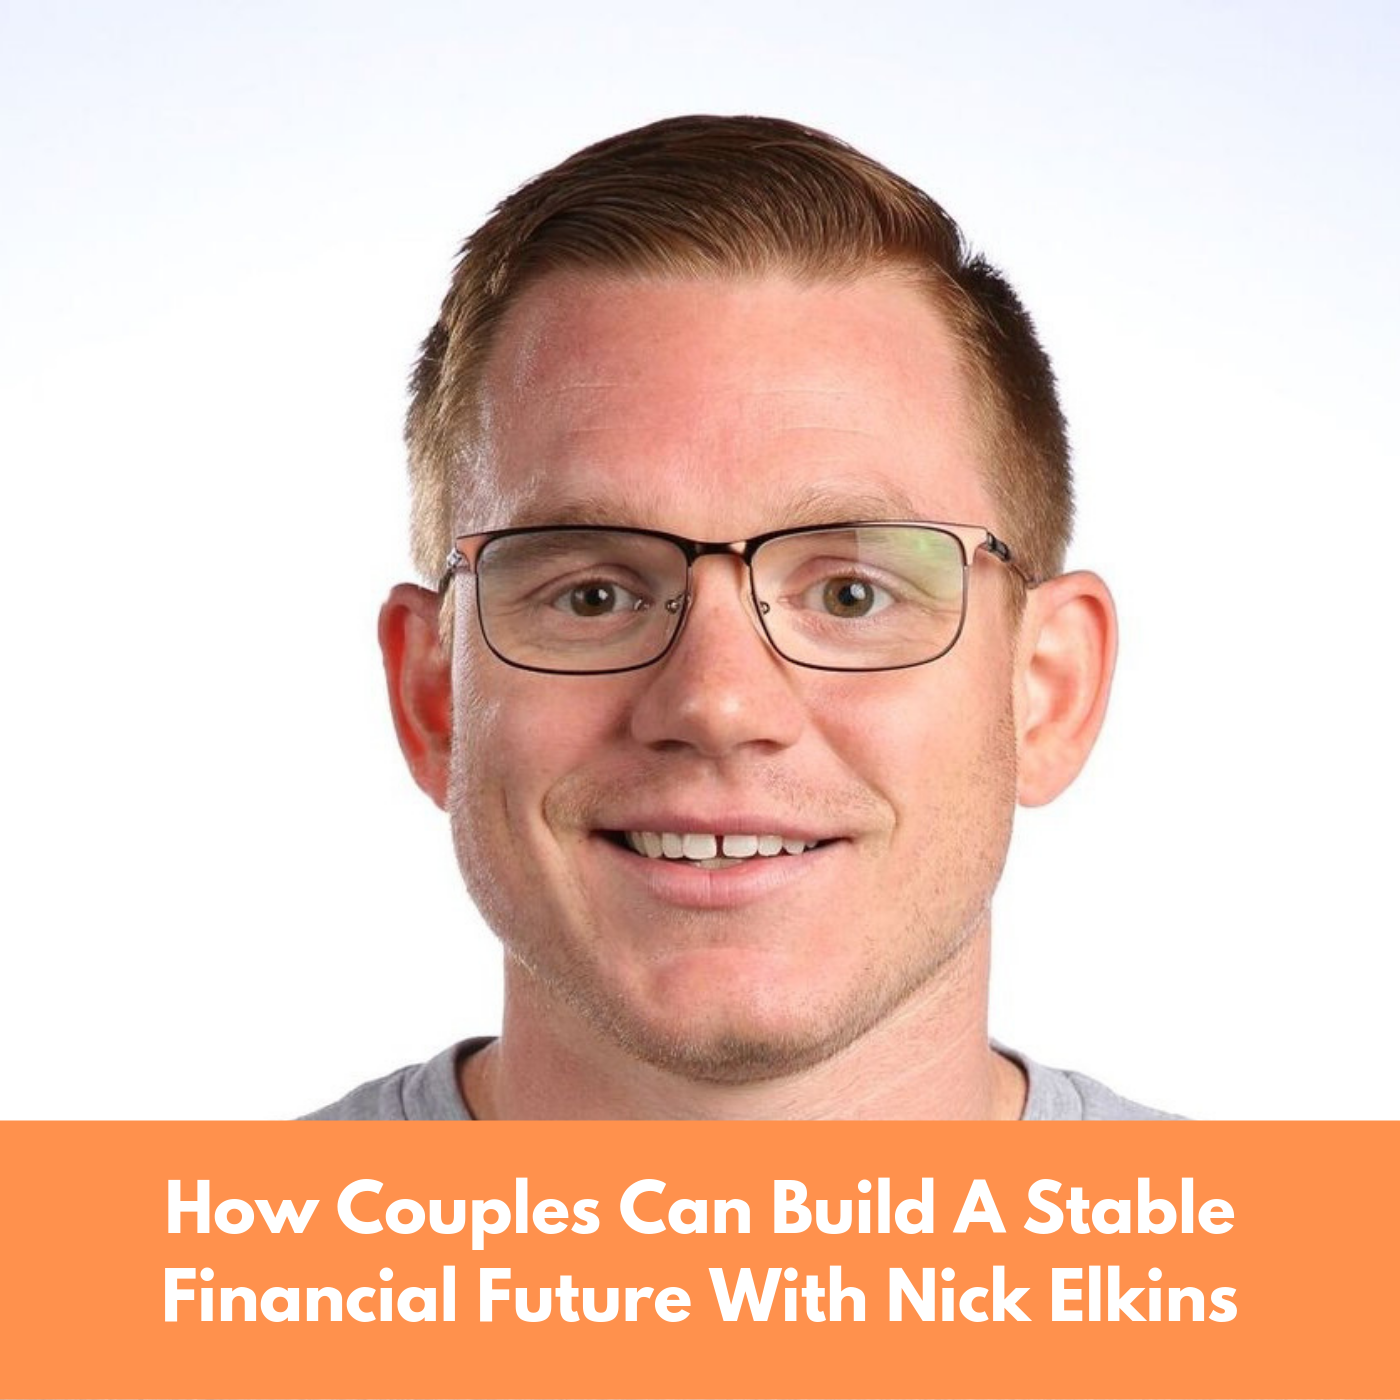 How Couples Can Work Together To Build A Stable Financial Future